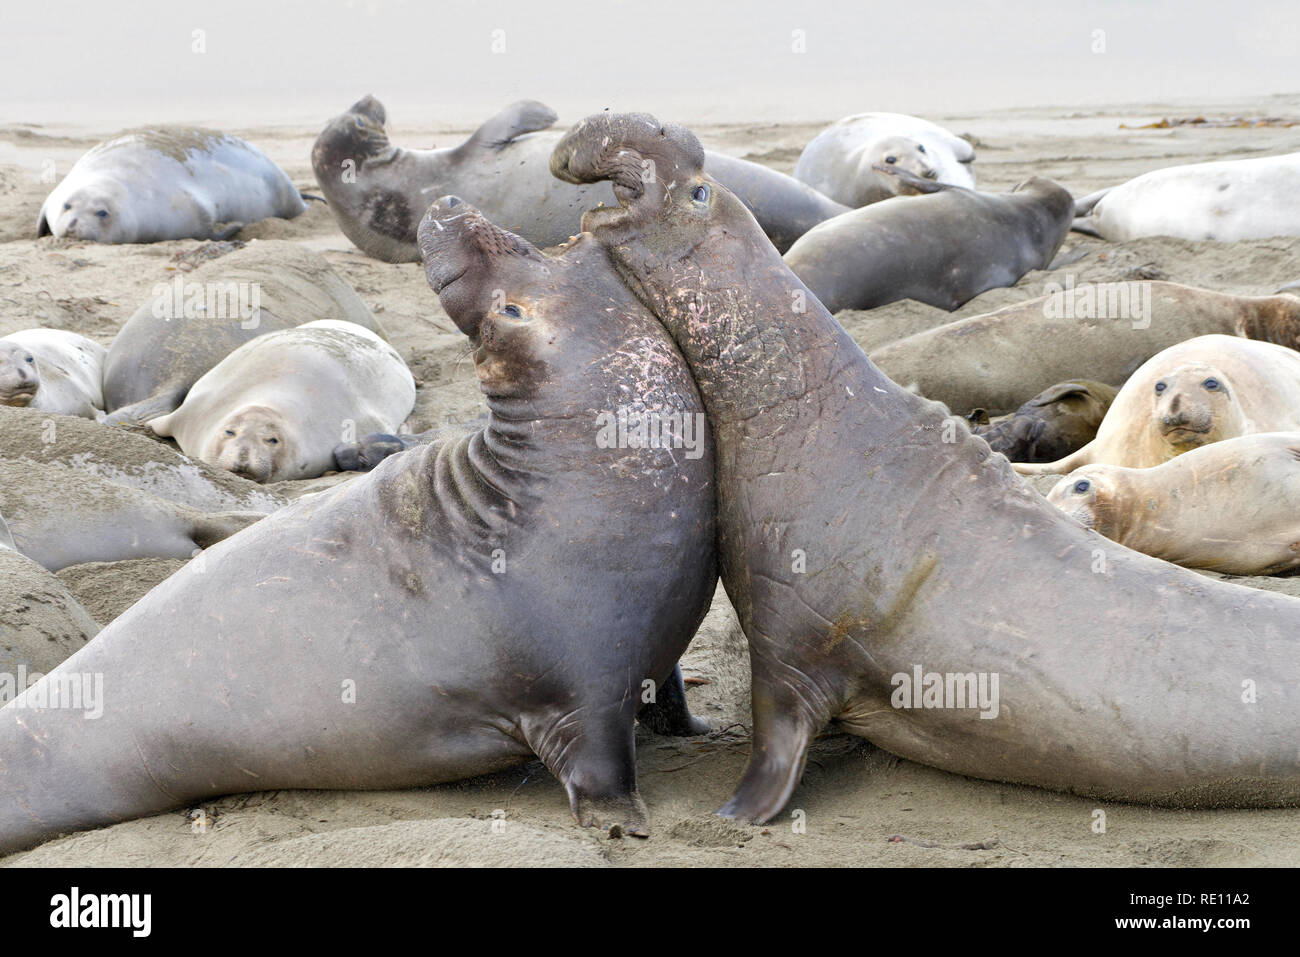 Two elephant seal bulls fighting. Bulls challenge each other for dominance. One challenges another, and one retreats. About 20 percent of challenges l - Stock Image